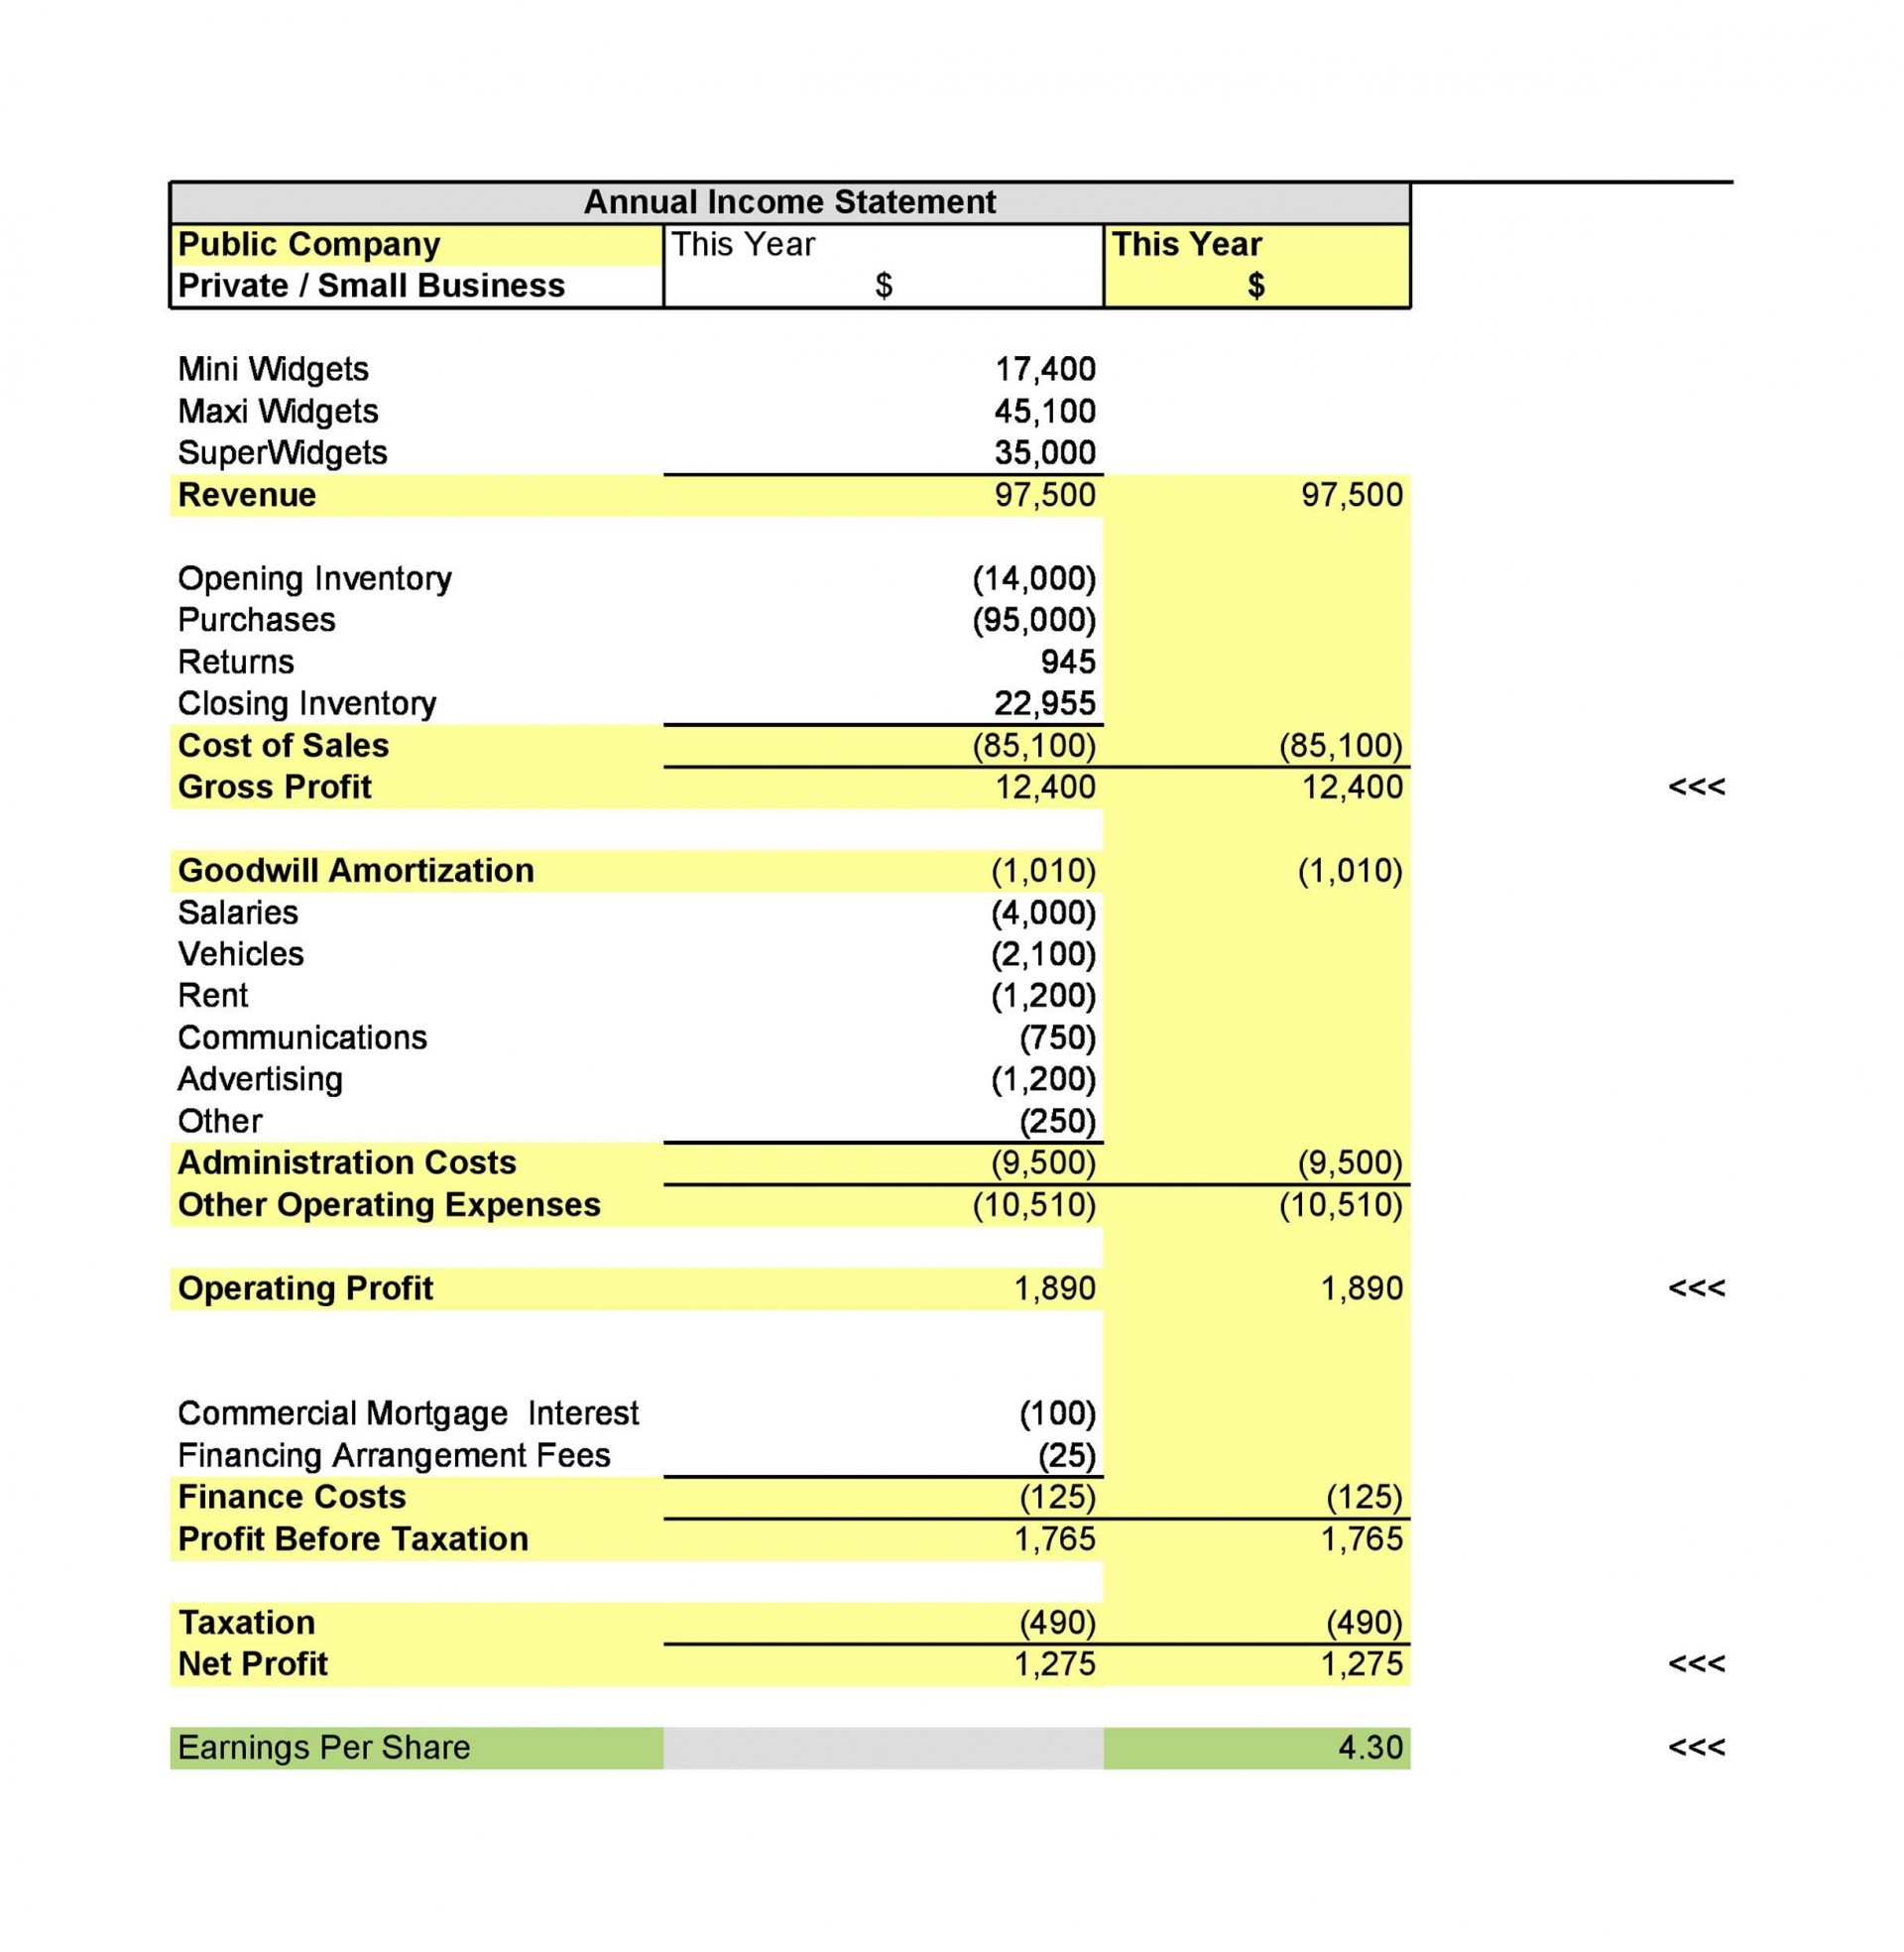 009 Shocking Income Statement Format In Excel Download High Definition 1920